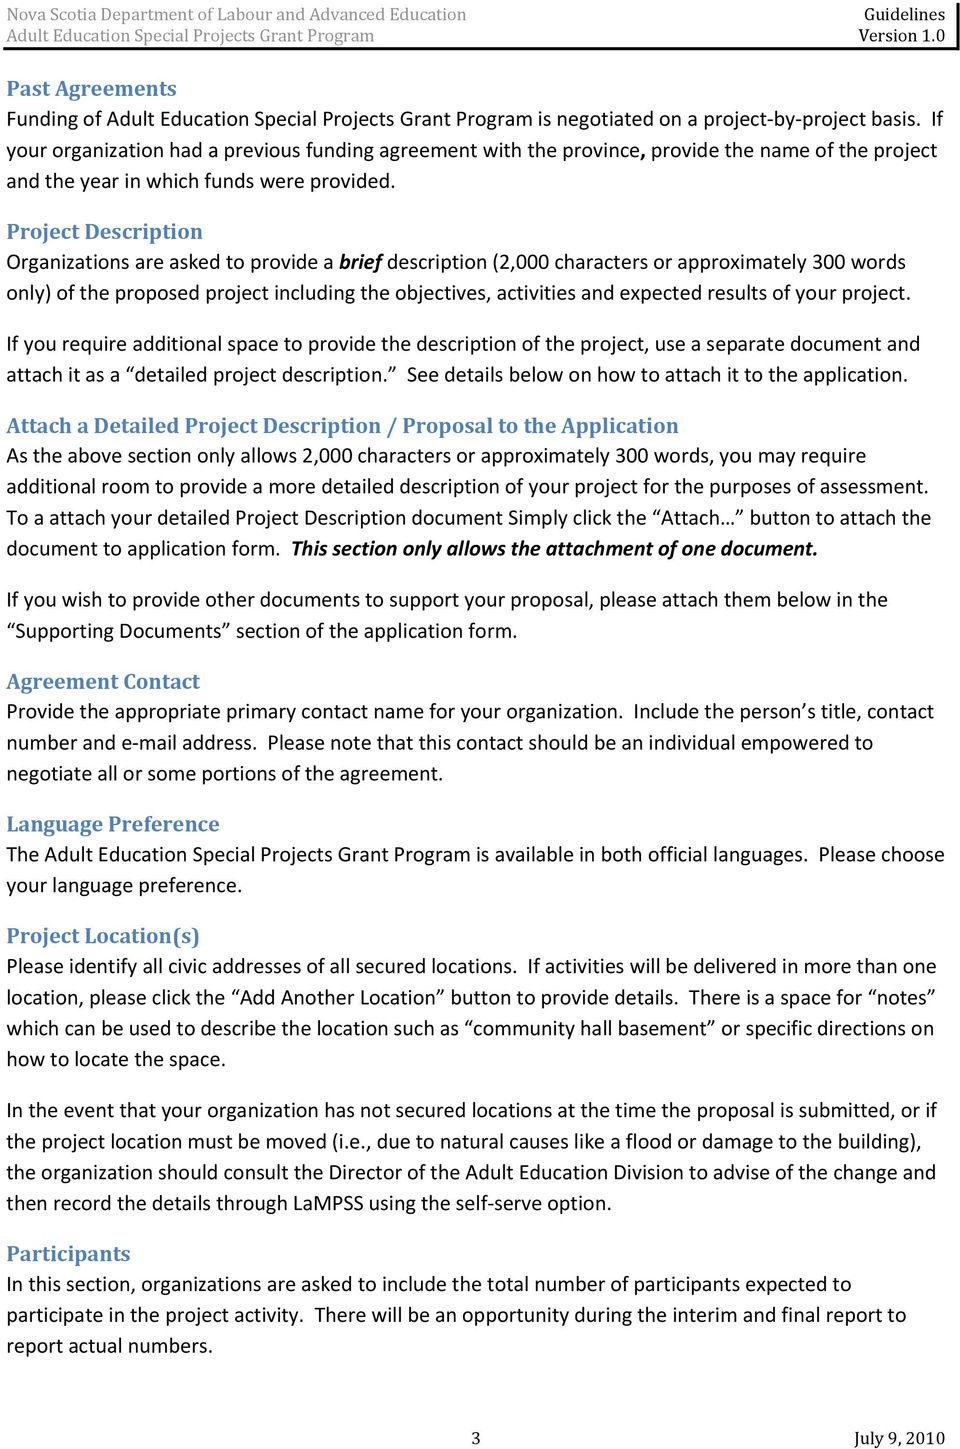 Project Description Organizations are asked to provide a brief description (2,000 characters or approximately 300 words only) of the proposed project including the objectives, activities and expected